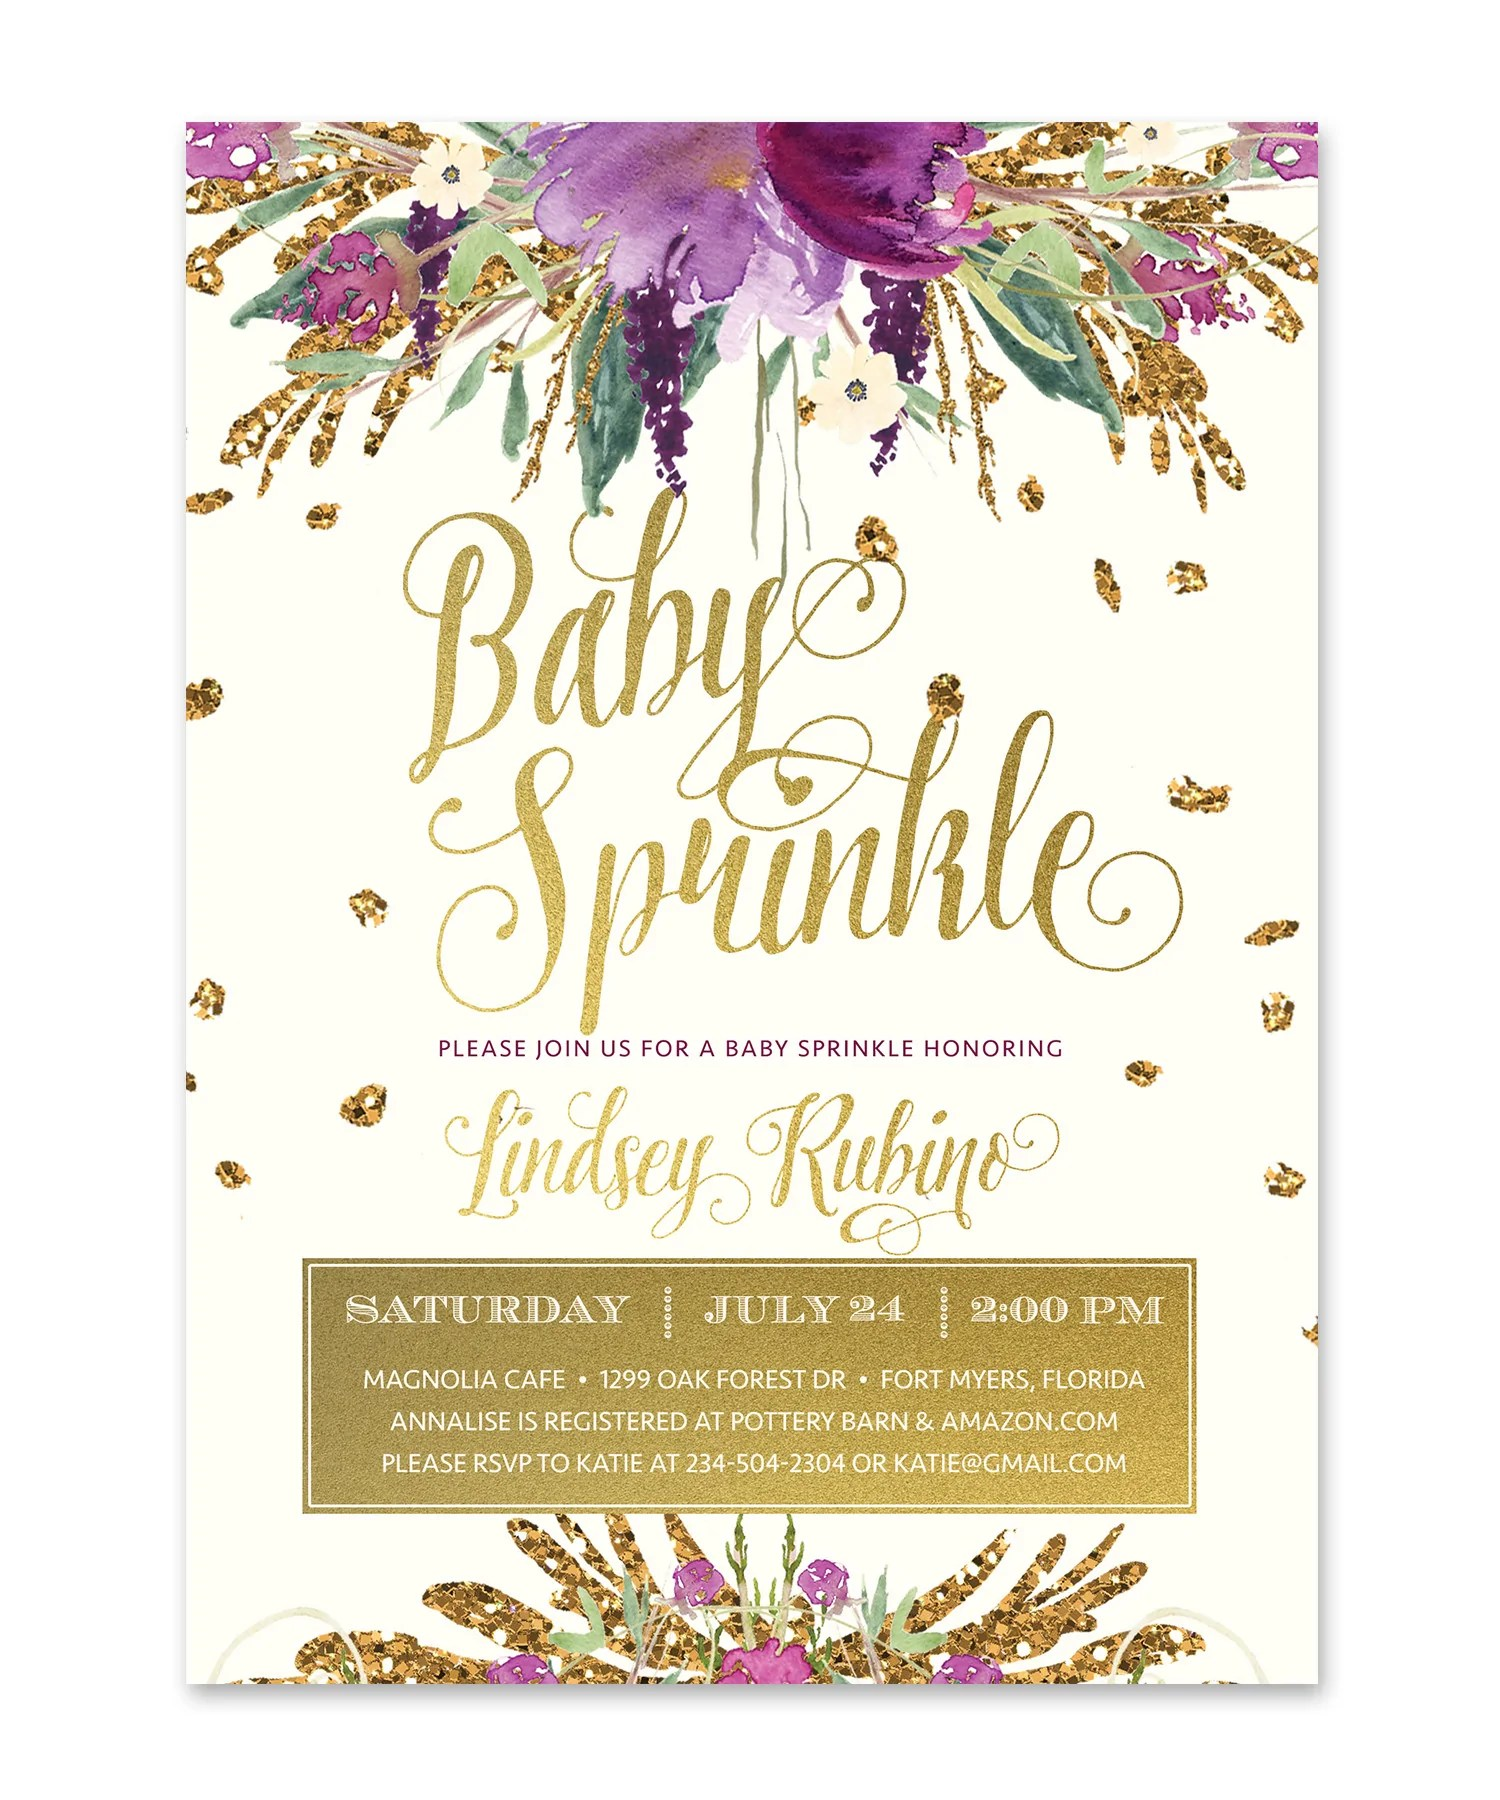 Compelling Baby Sprinkle Invitation Baby Sprinkle Purple Florals Baby Shower Baby Sprinkle Invitations Walmart Baby Sprinkle Invitations Boy wedding invitation Baby Sprinkle Invitations